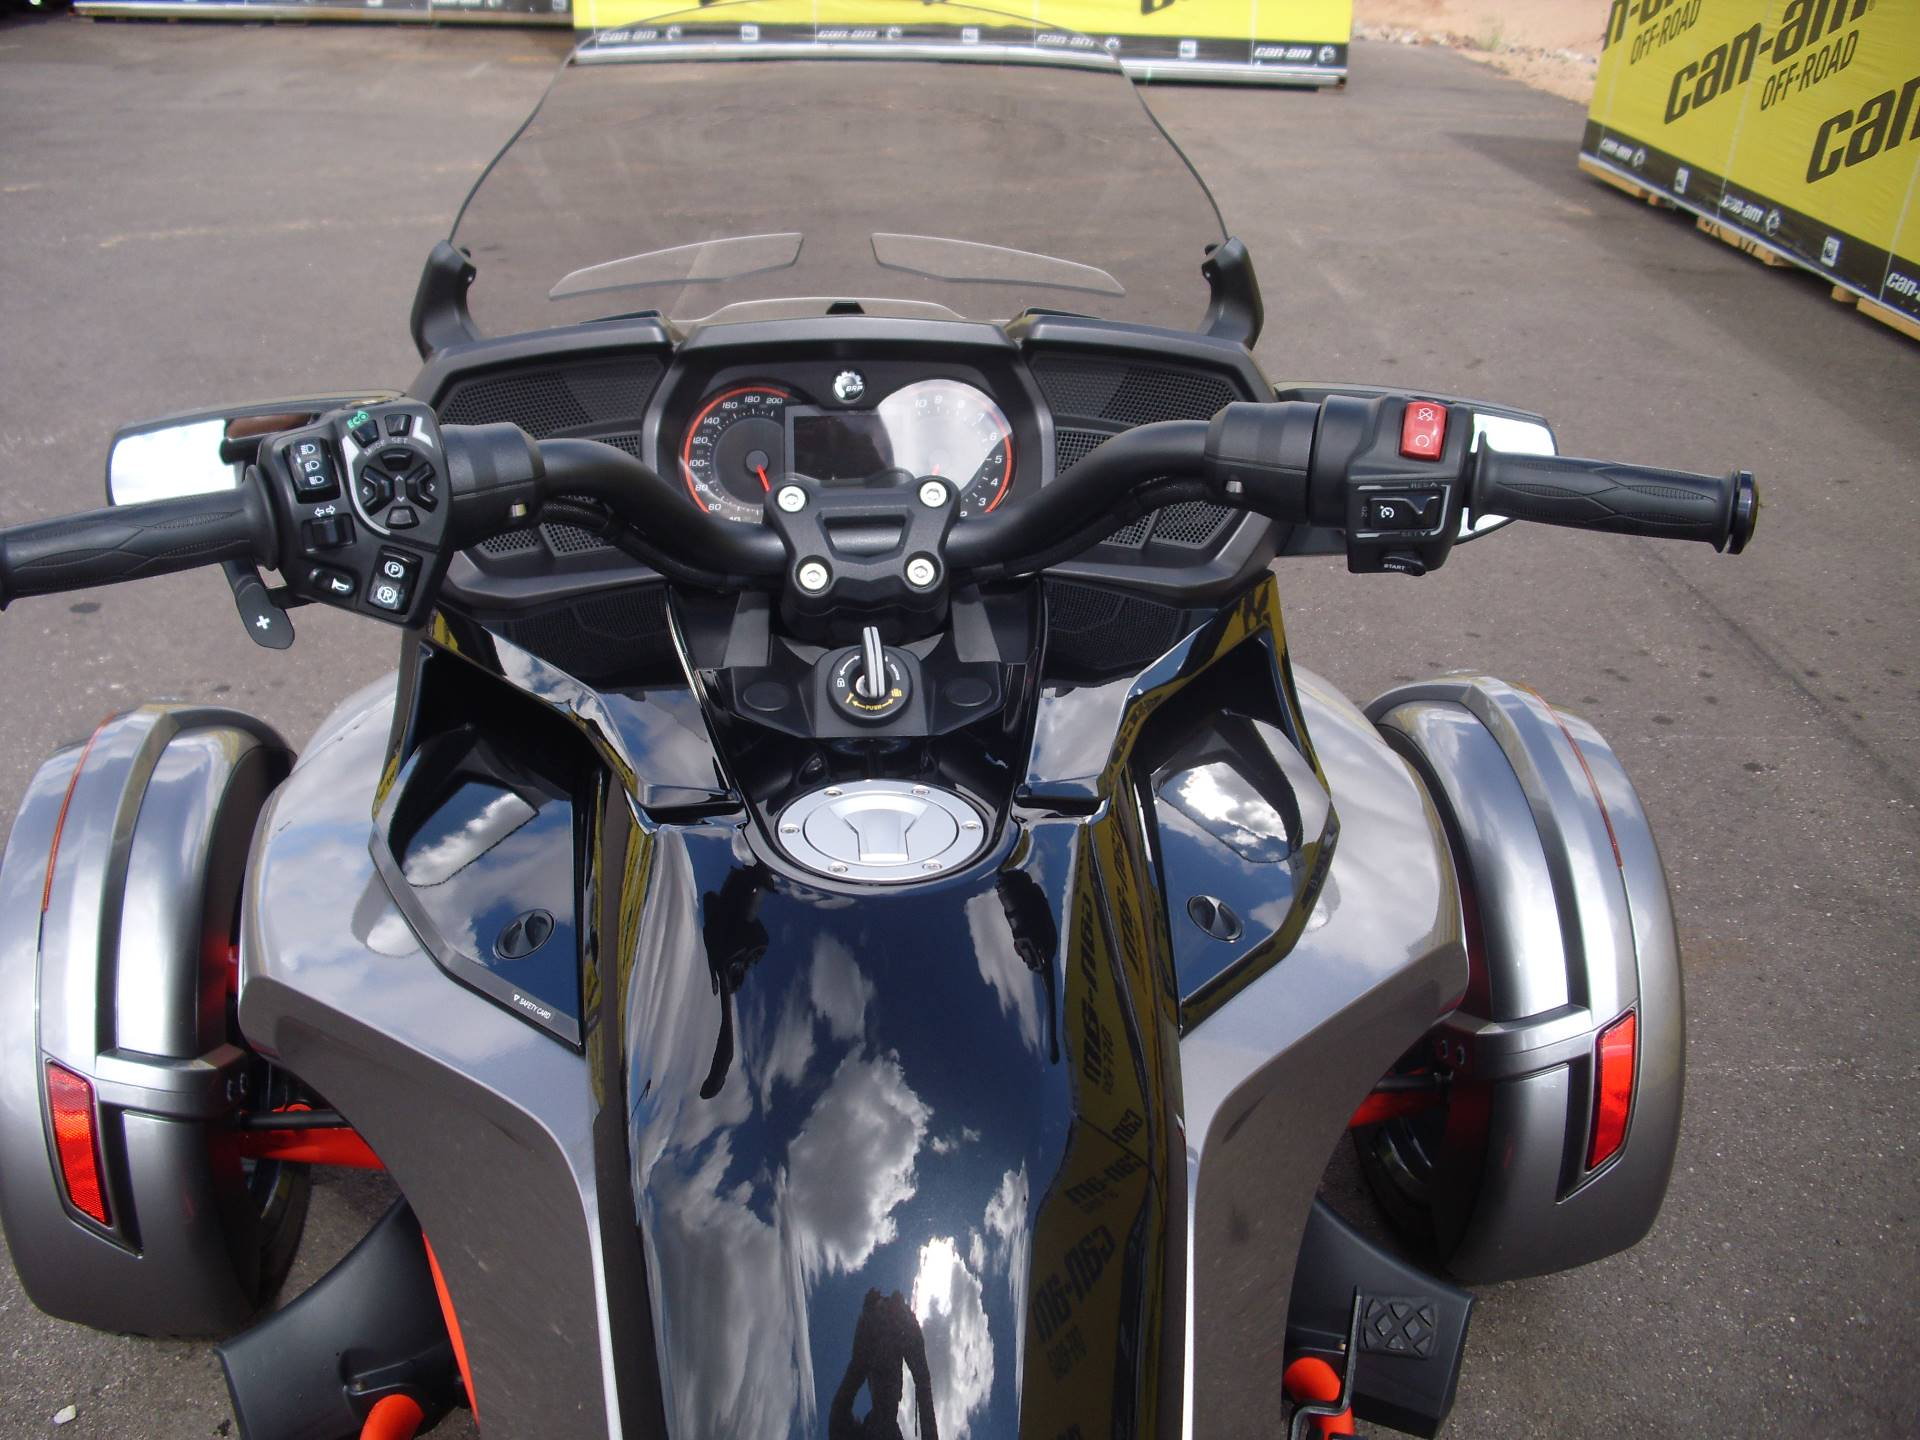 2016 Can-Am™ Spyder F3-T SE6 w/ Audio System 7